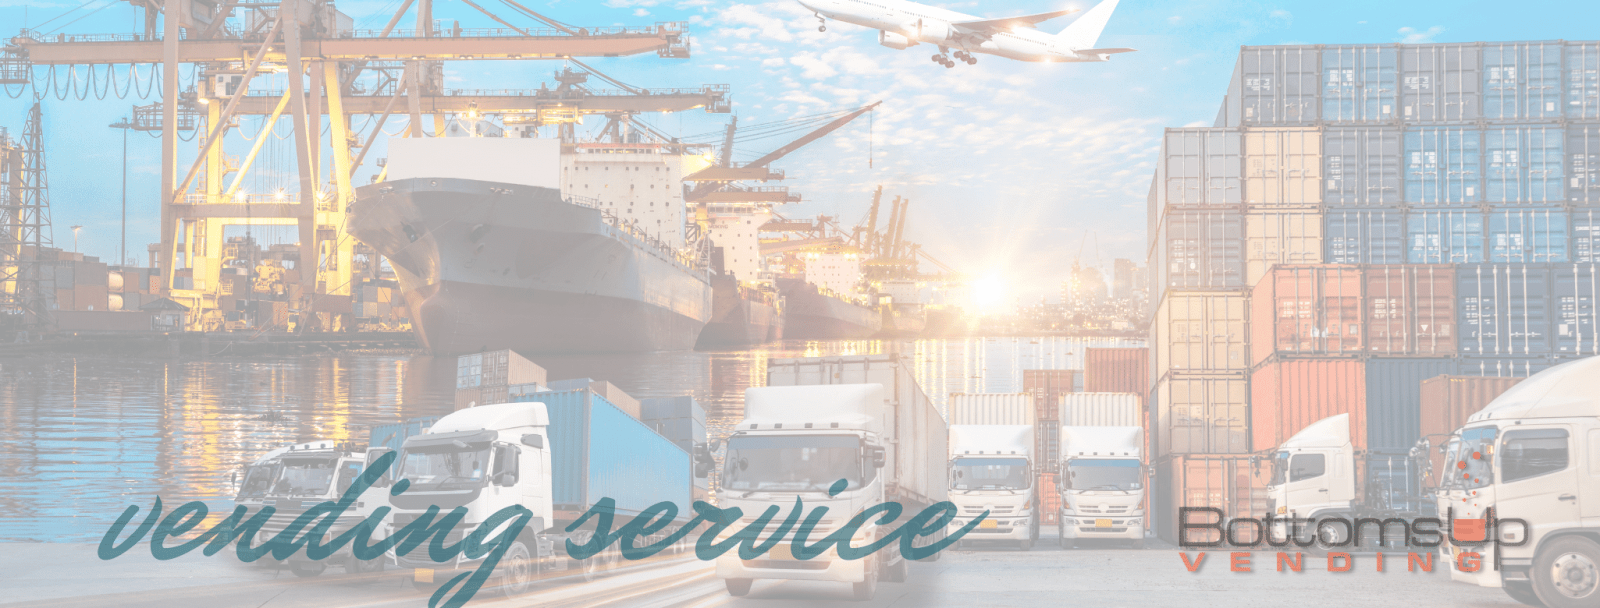 Vending Services for Manufacturing Plants and Logistics Companies